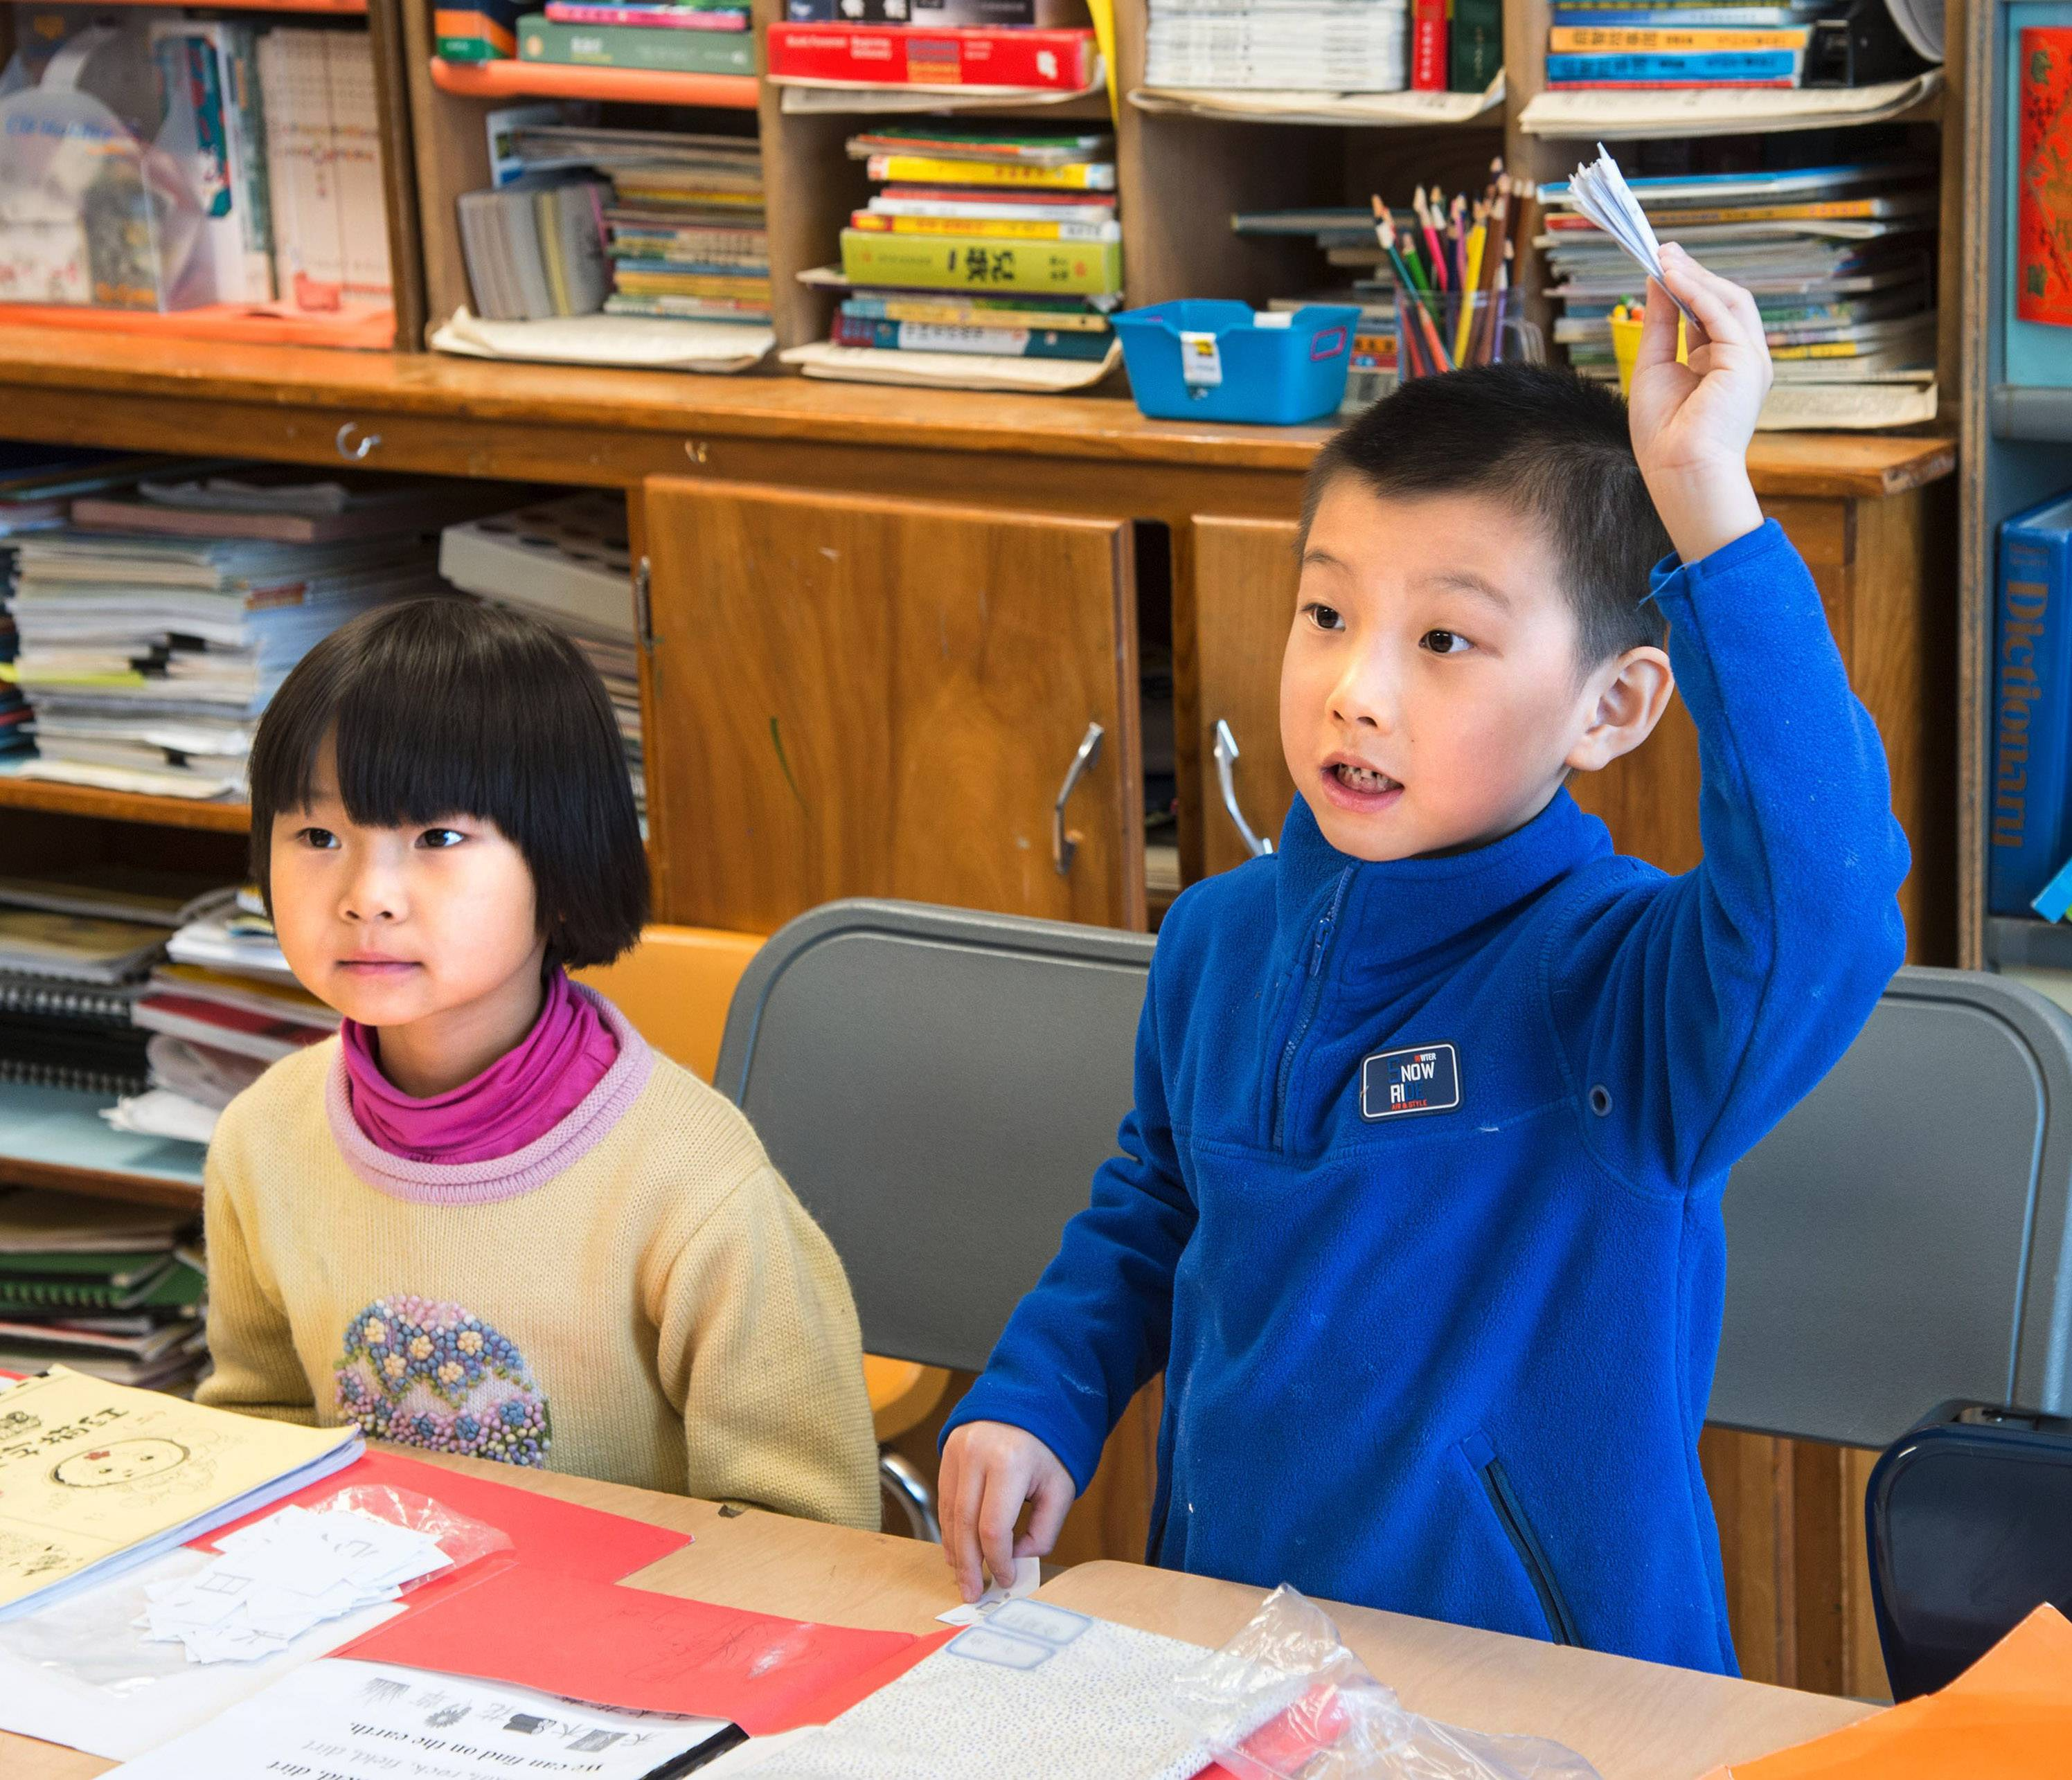 Associated PressXiyue Li, left, and Yixing Jin participate in a lesson in Lihui Zhang's Mandarin Chinese language class at Martin Luther King Elementary School in Urbana.